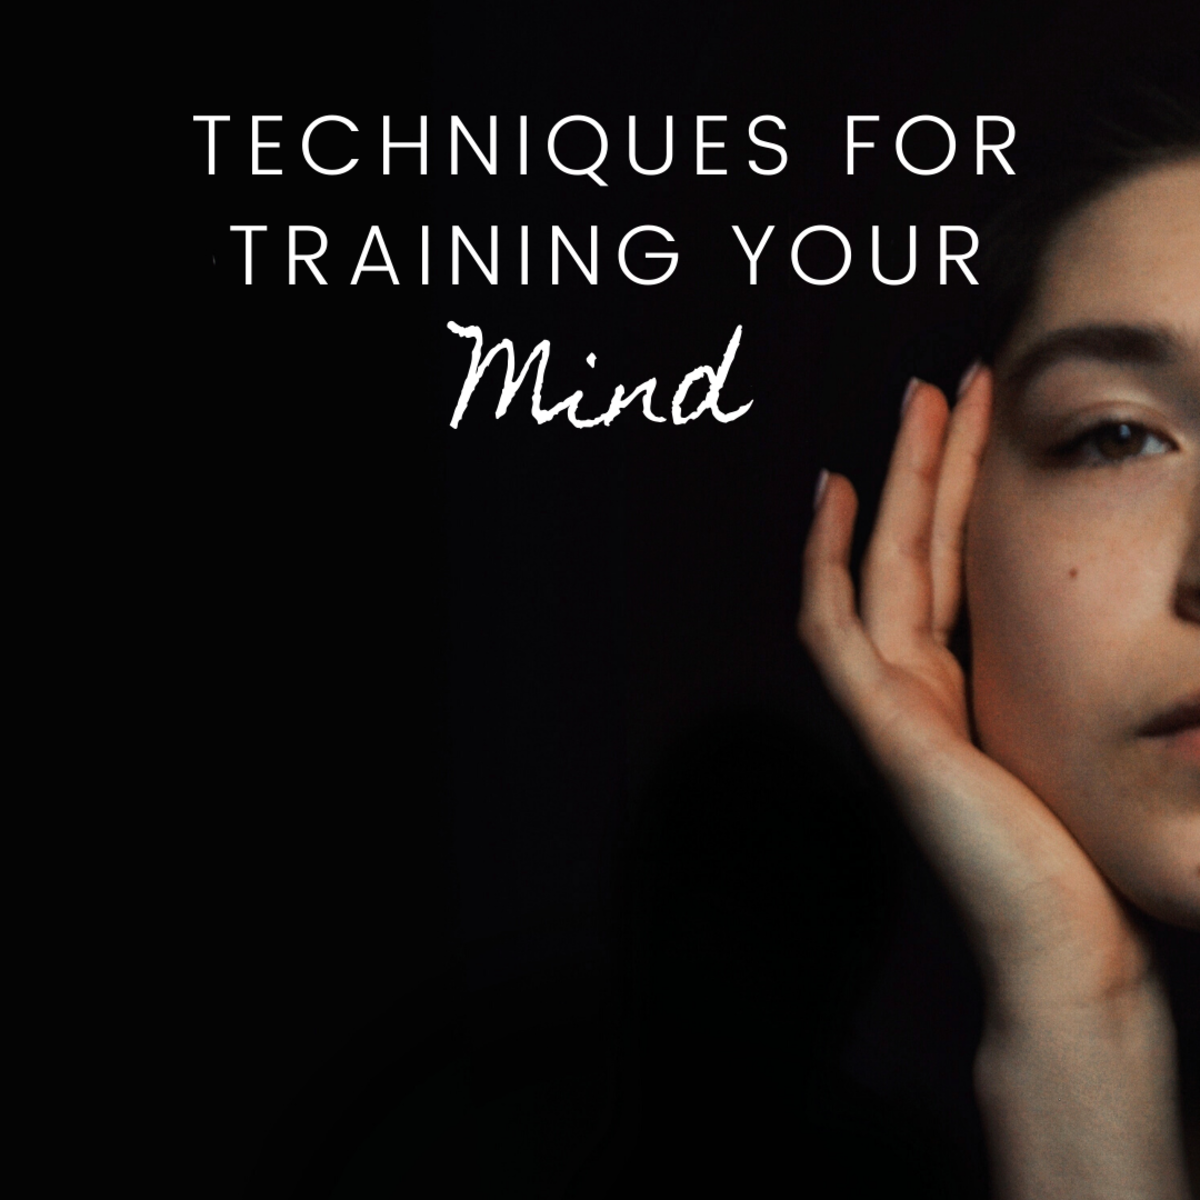 Techniques for Training Your Mind